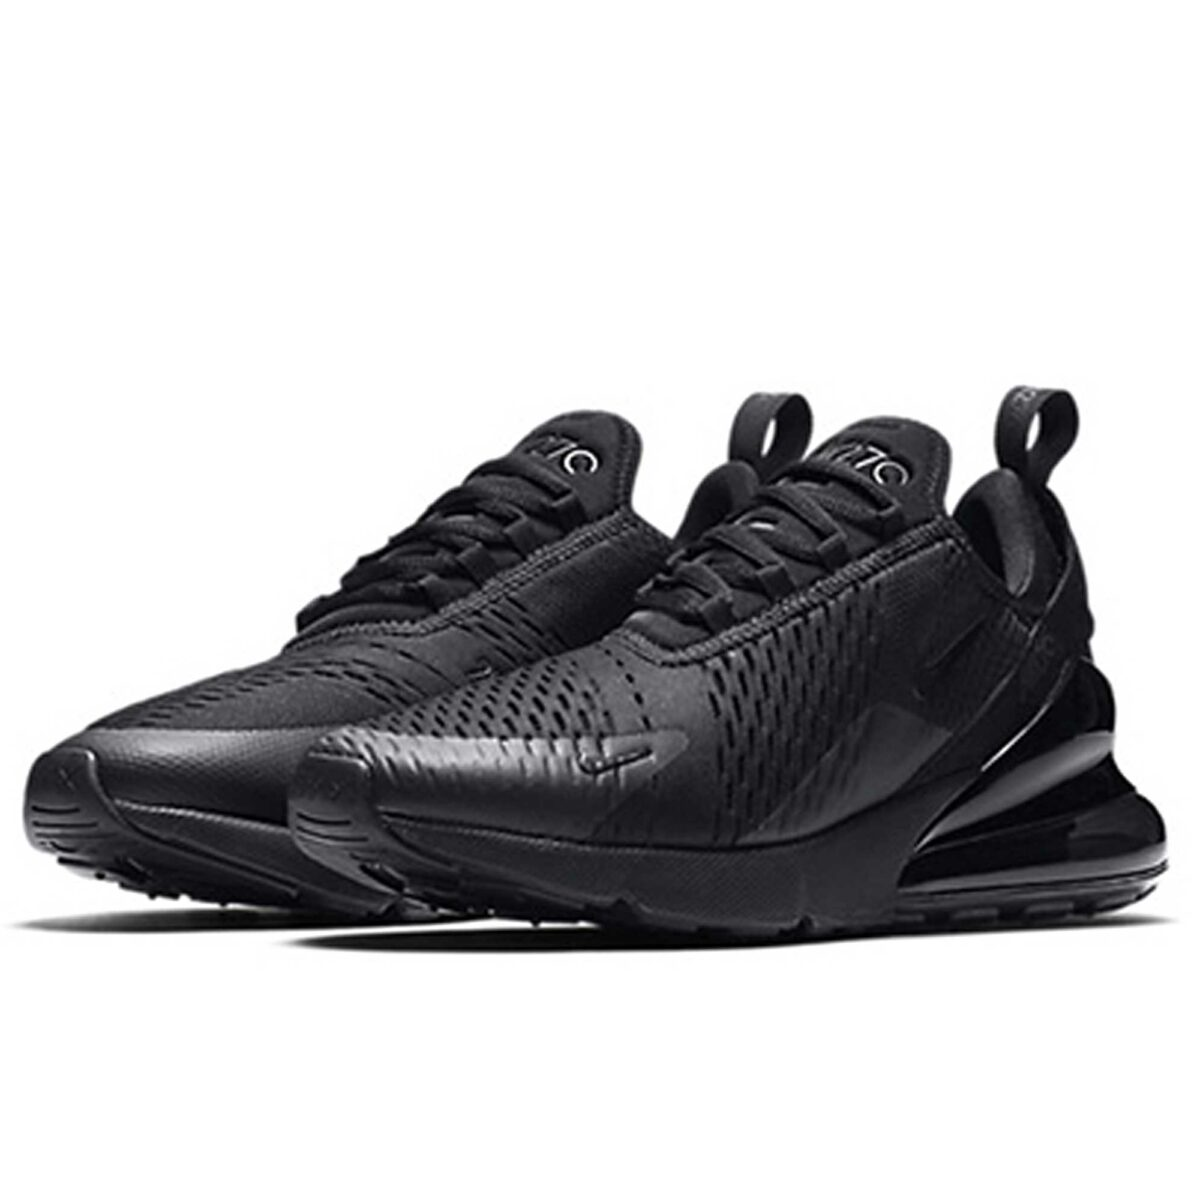 nike air max 270 all black H8050_005 купить